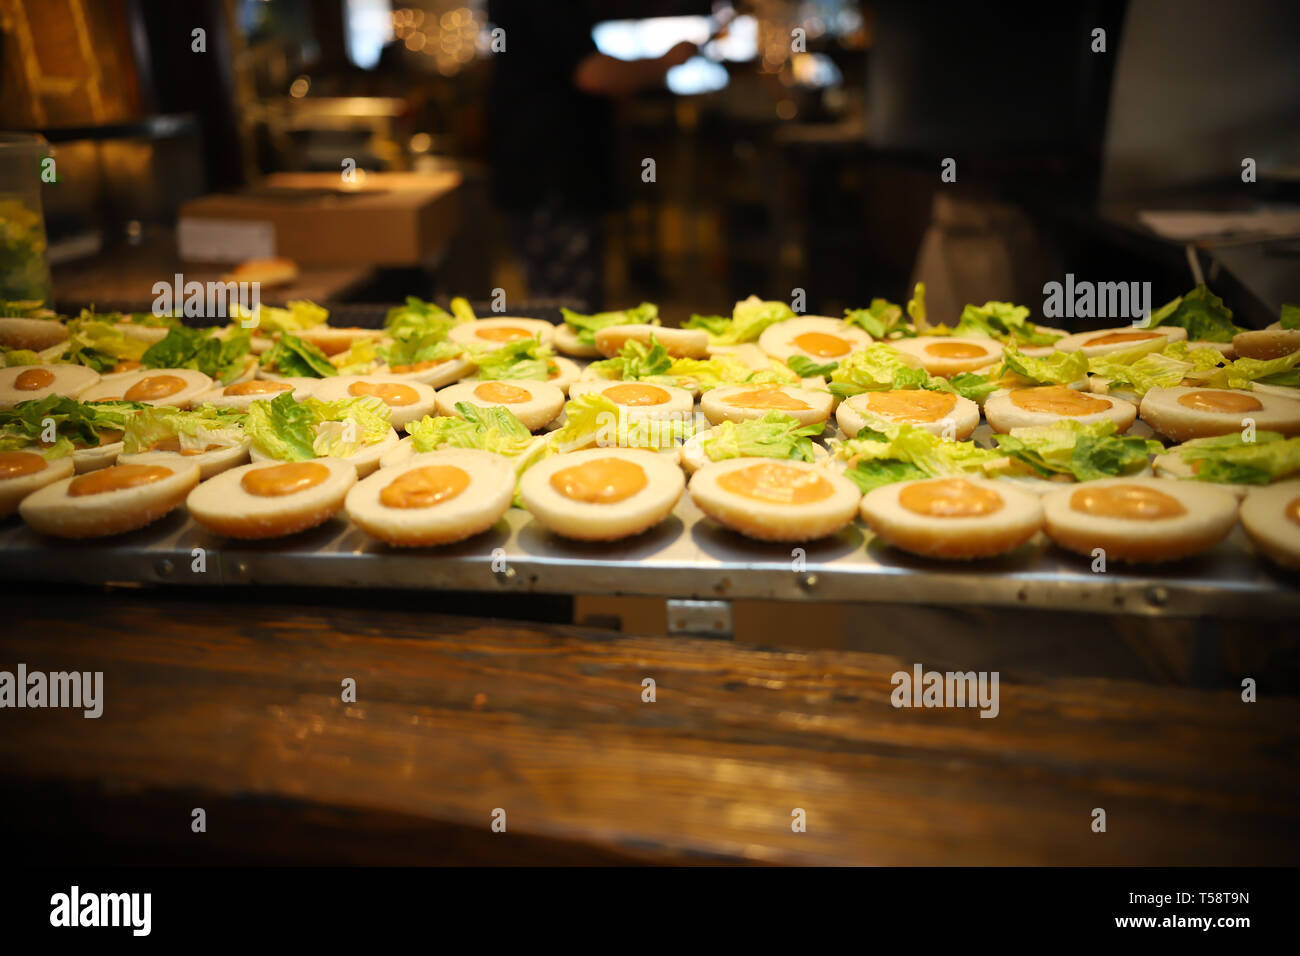 Modern cafe. A stand with buns with sauce on top Stock Photo